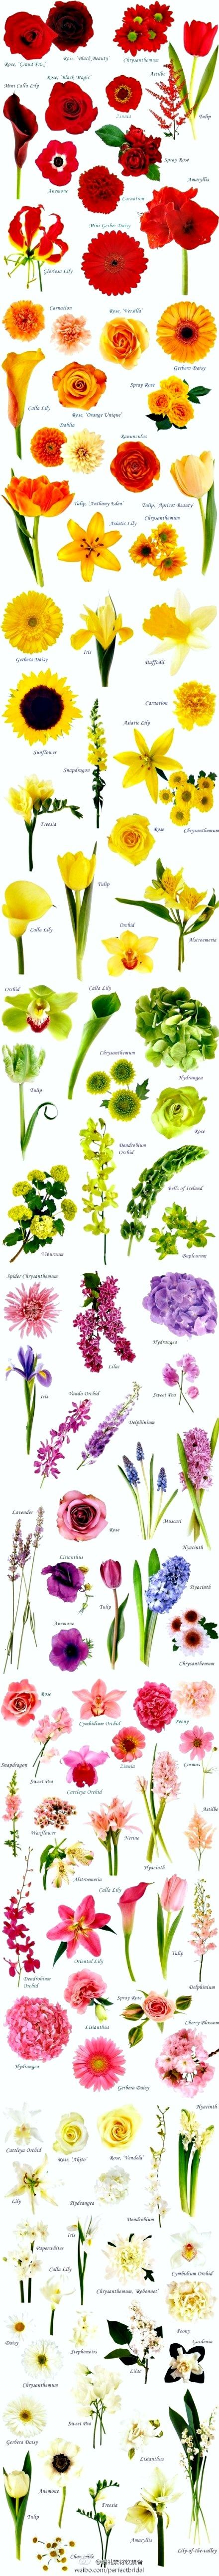 Best flowers for wedding month... #flowerchart #flowertypes